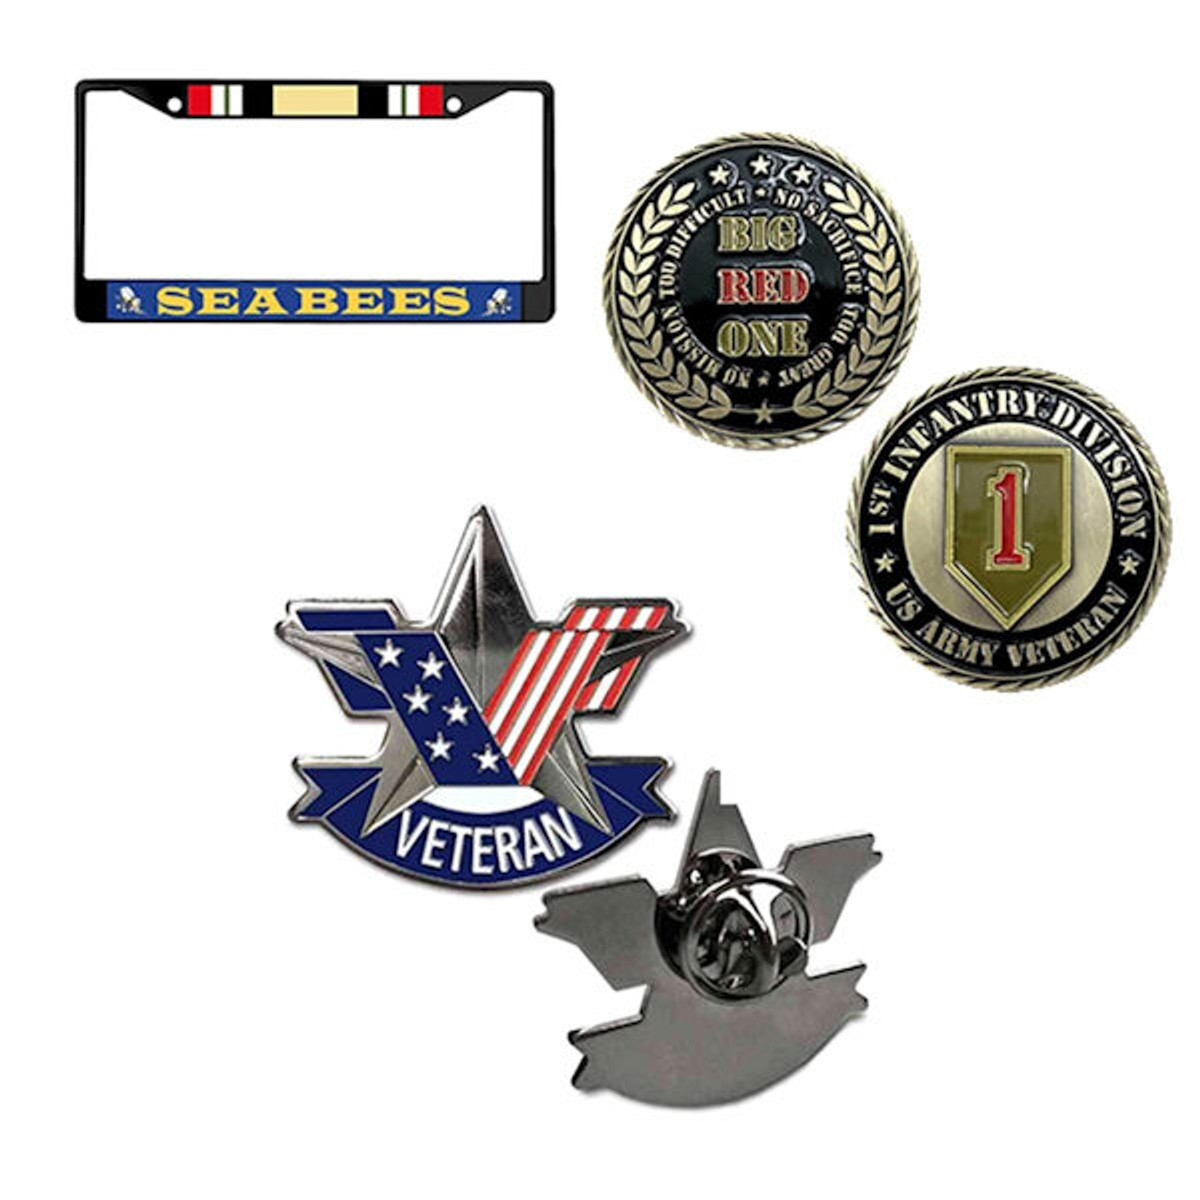 military pins challenge coins automobile license plate frames part of 3 month subscription plan